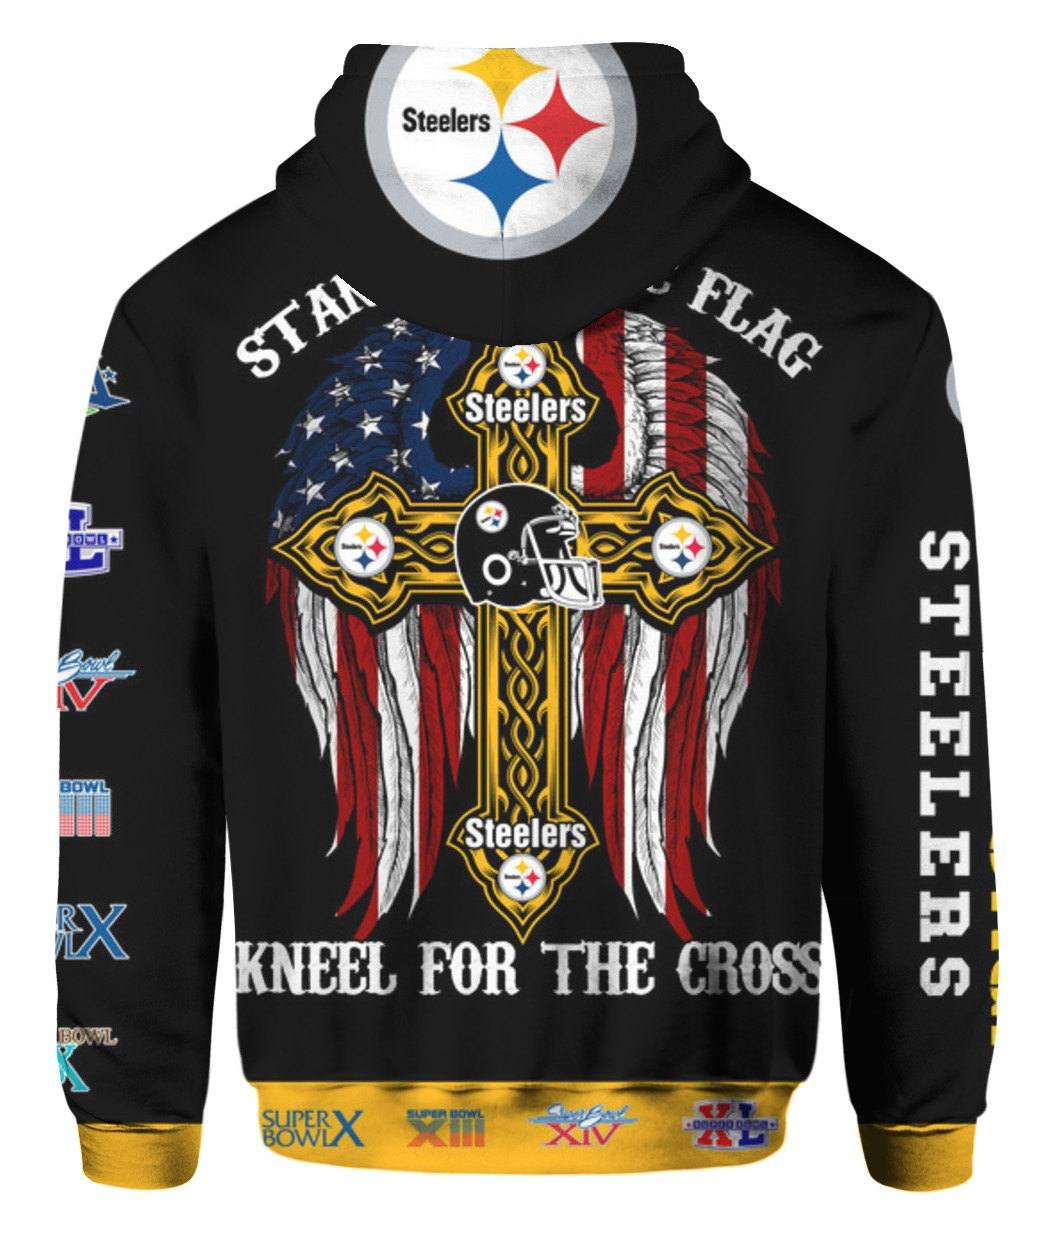 Stand for the flag kneel for the cross pittsburgh steelers all over print hoodie - back